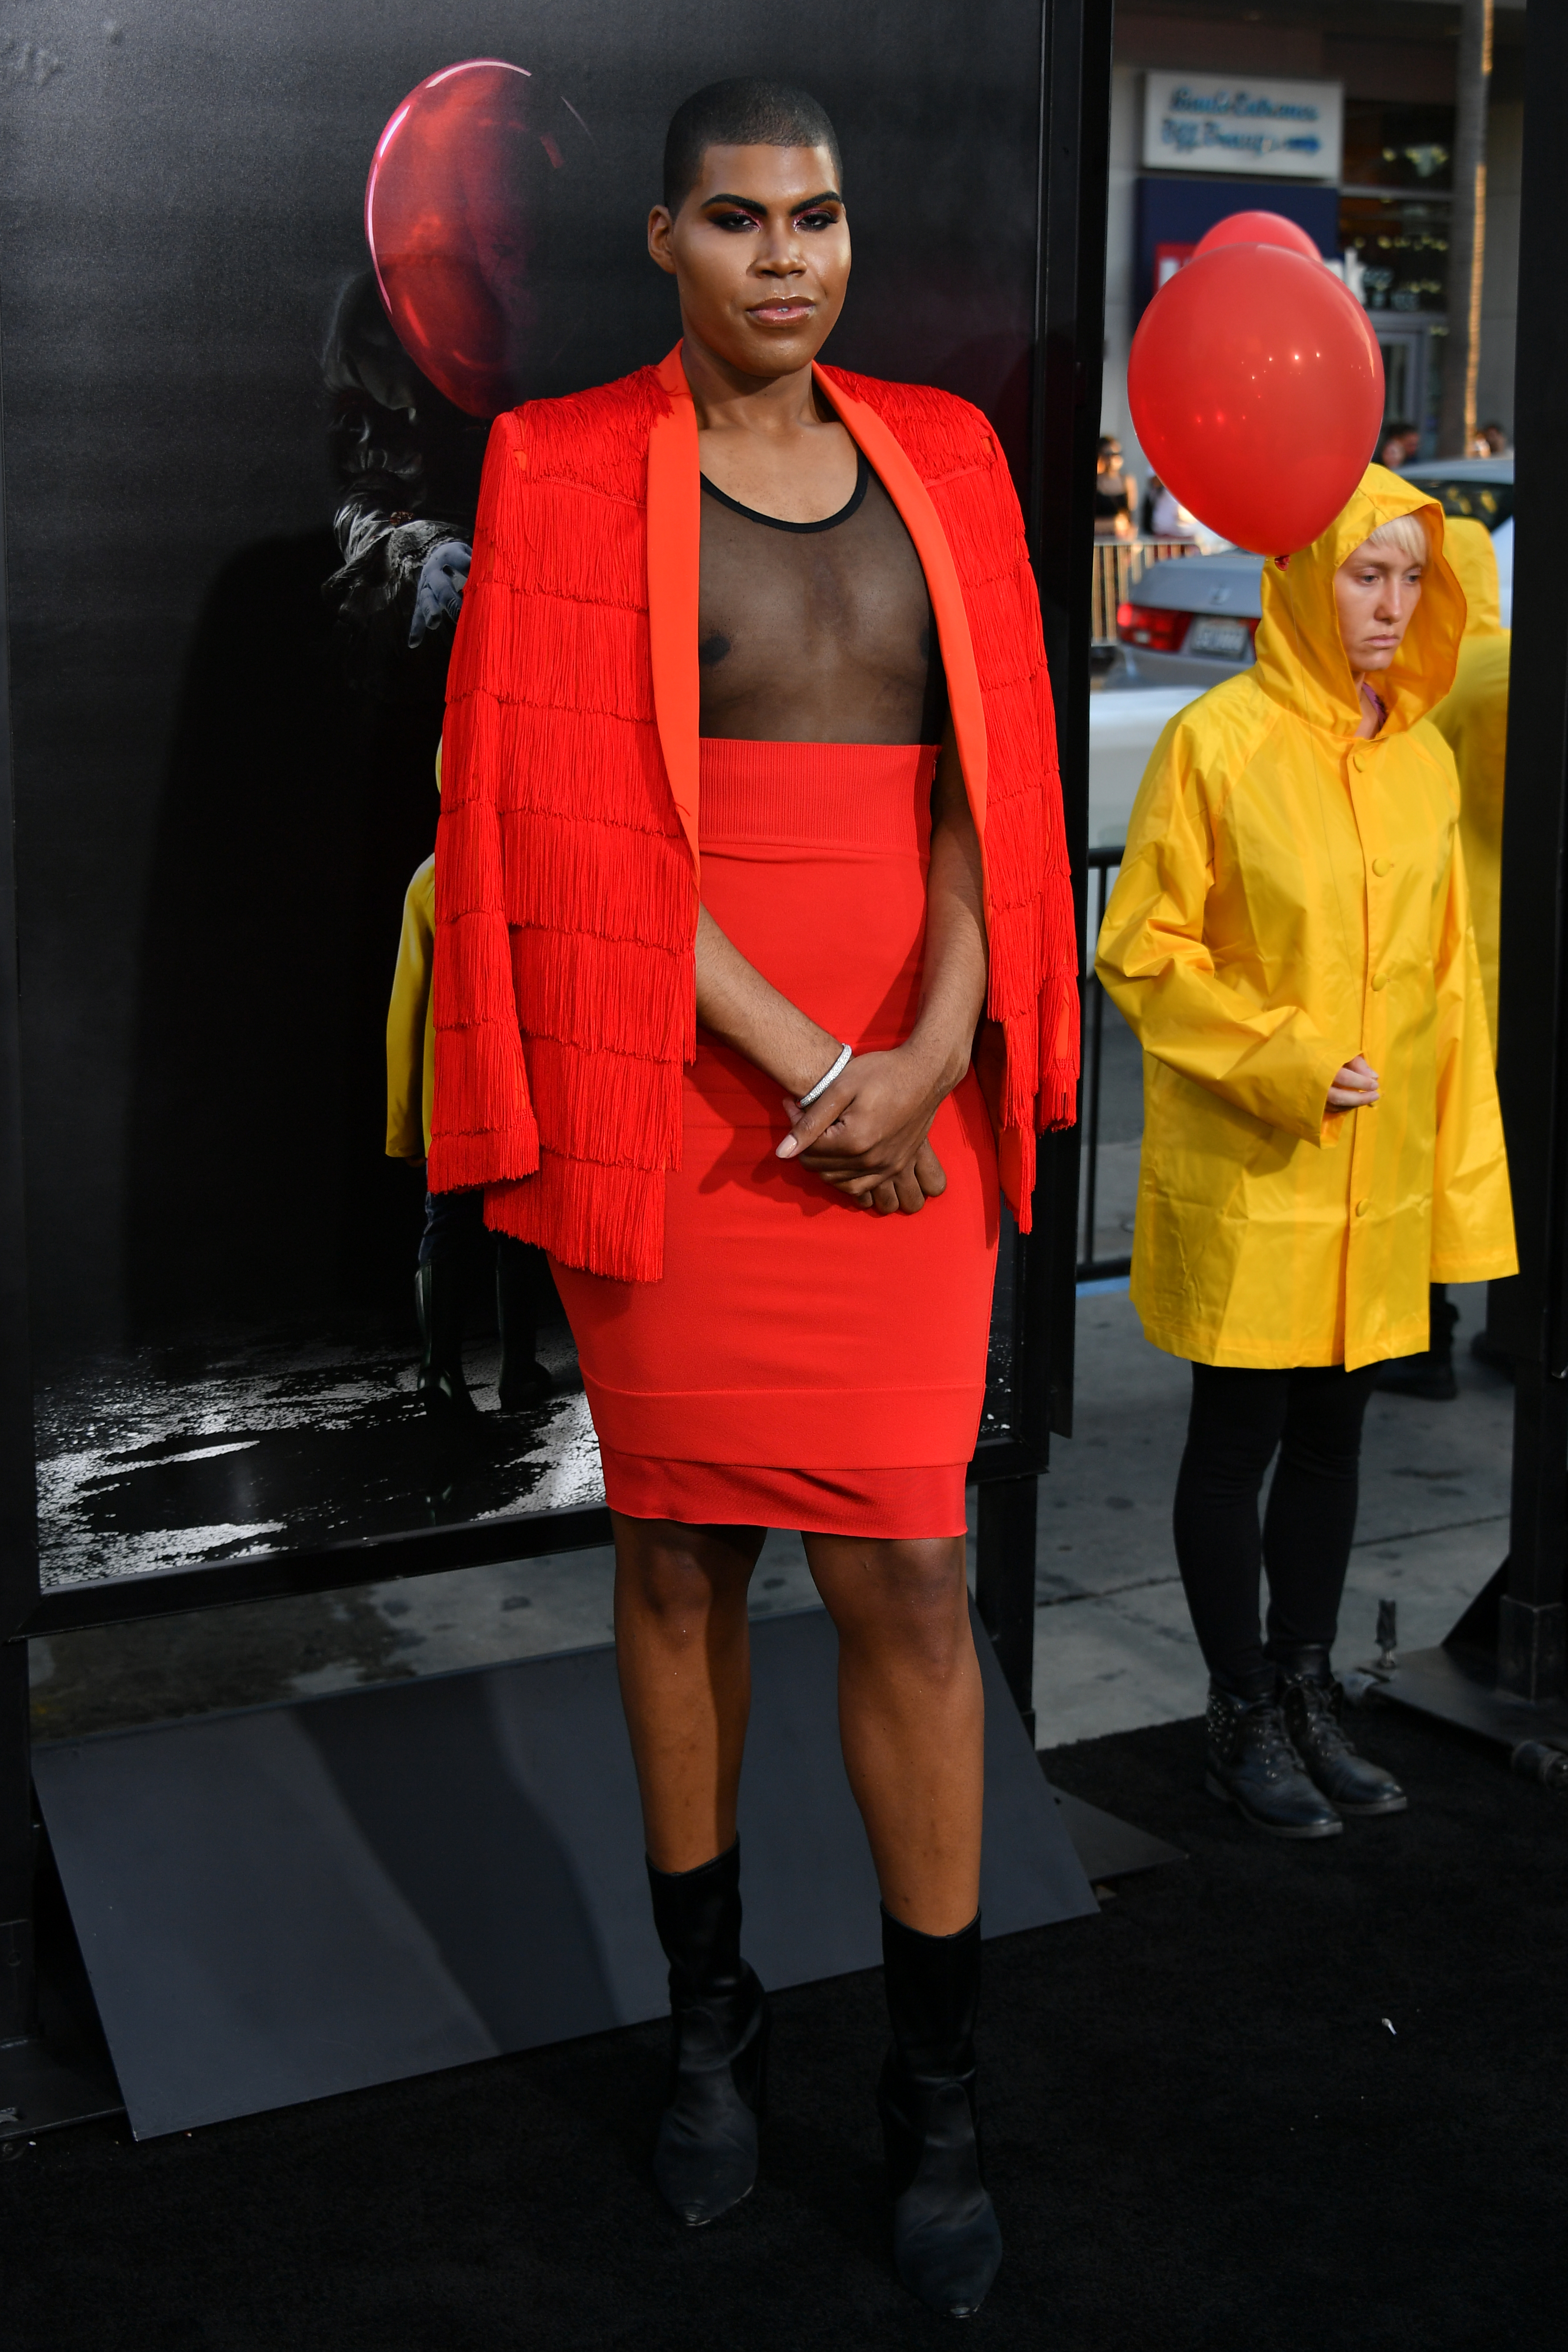 EJ Johnson is the new pin-up for gender fluidity